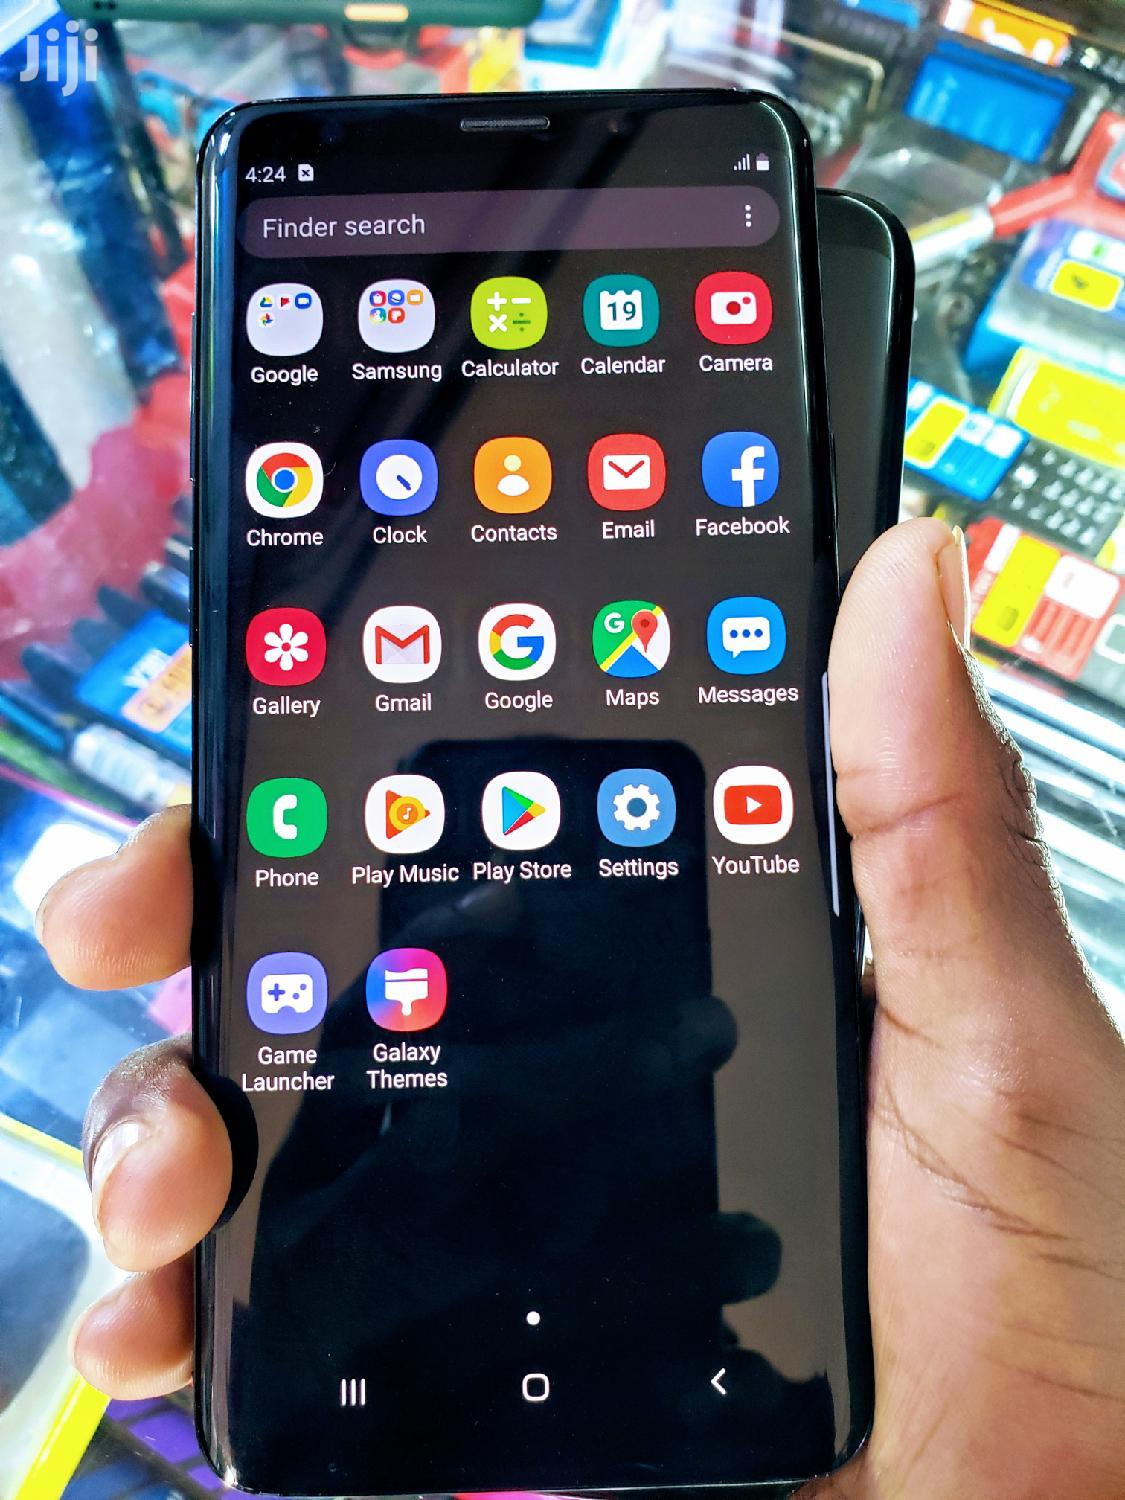 Samsung Galaxy S9 Plus 64 GB Black | Mobile Phones for sale in Kampala, Central Region, Uganda